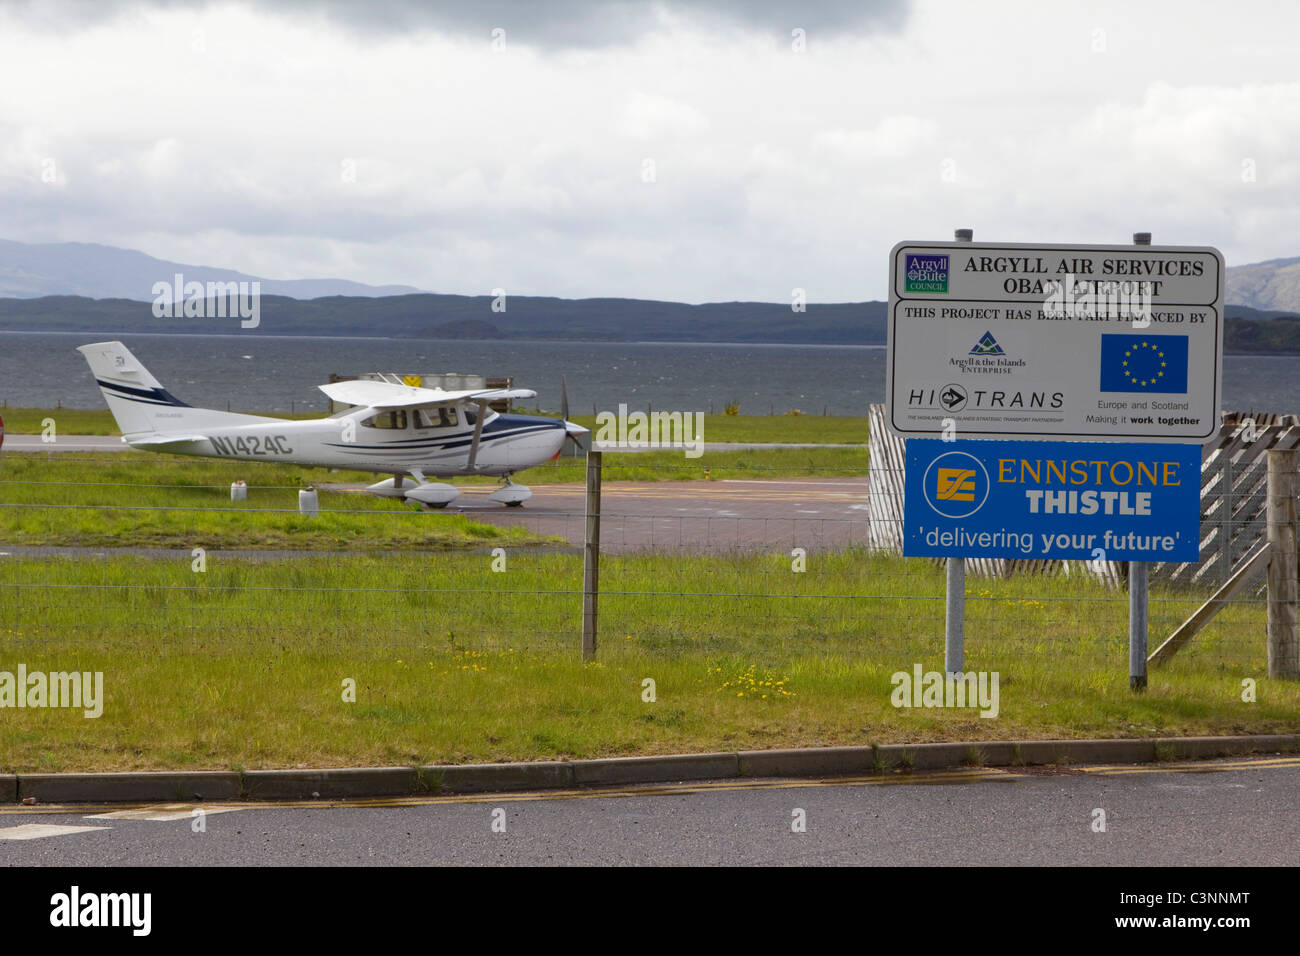 Oban Airport  is located  northeast of Oban, near the village of North Connel, Argyll and Bute, Scotland. Stock Photo